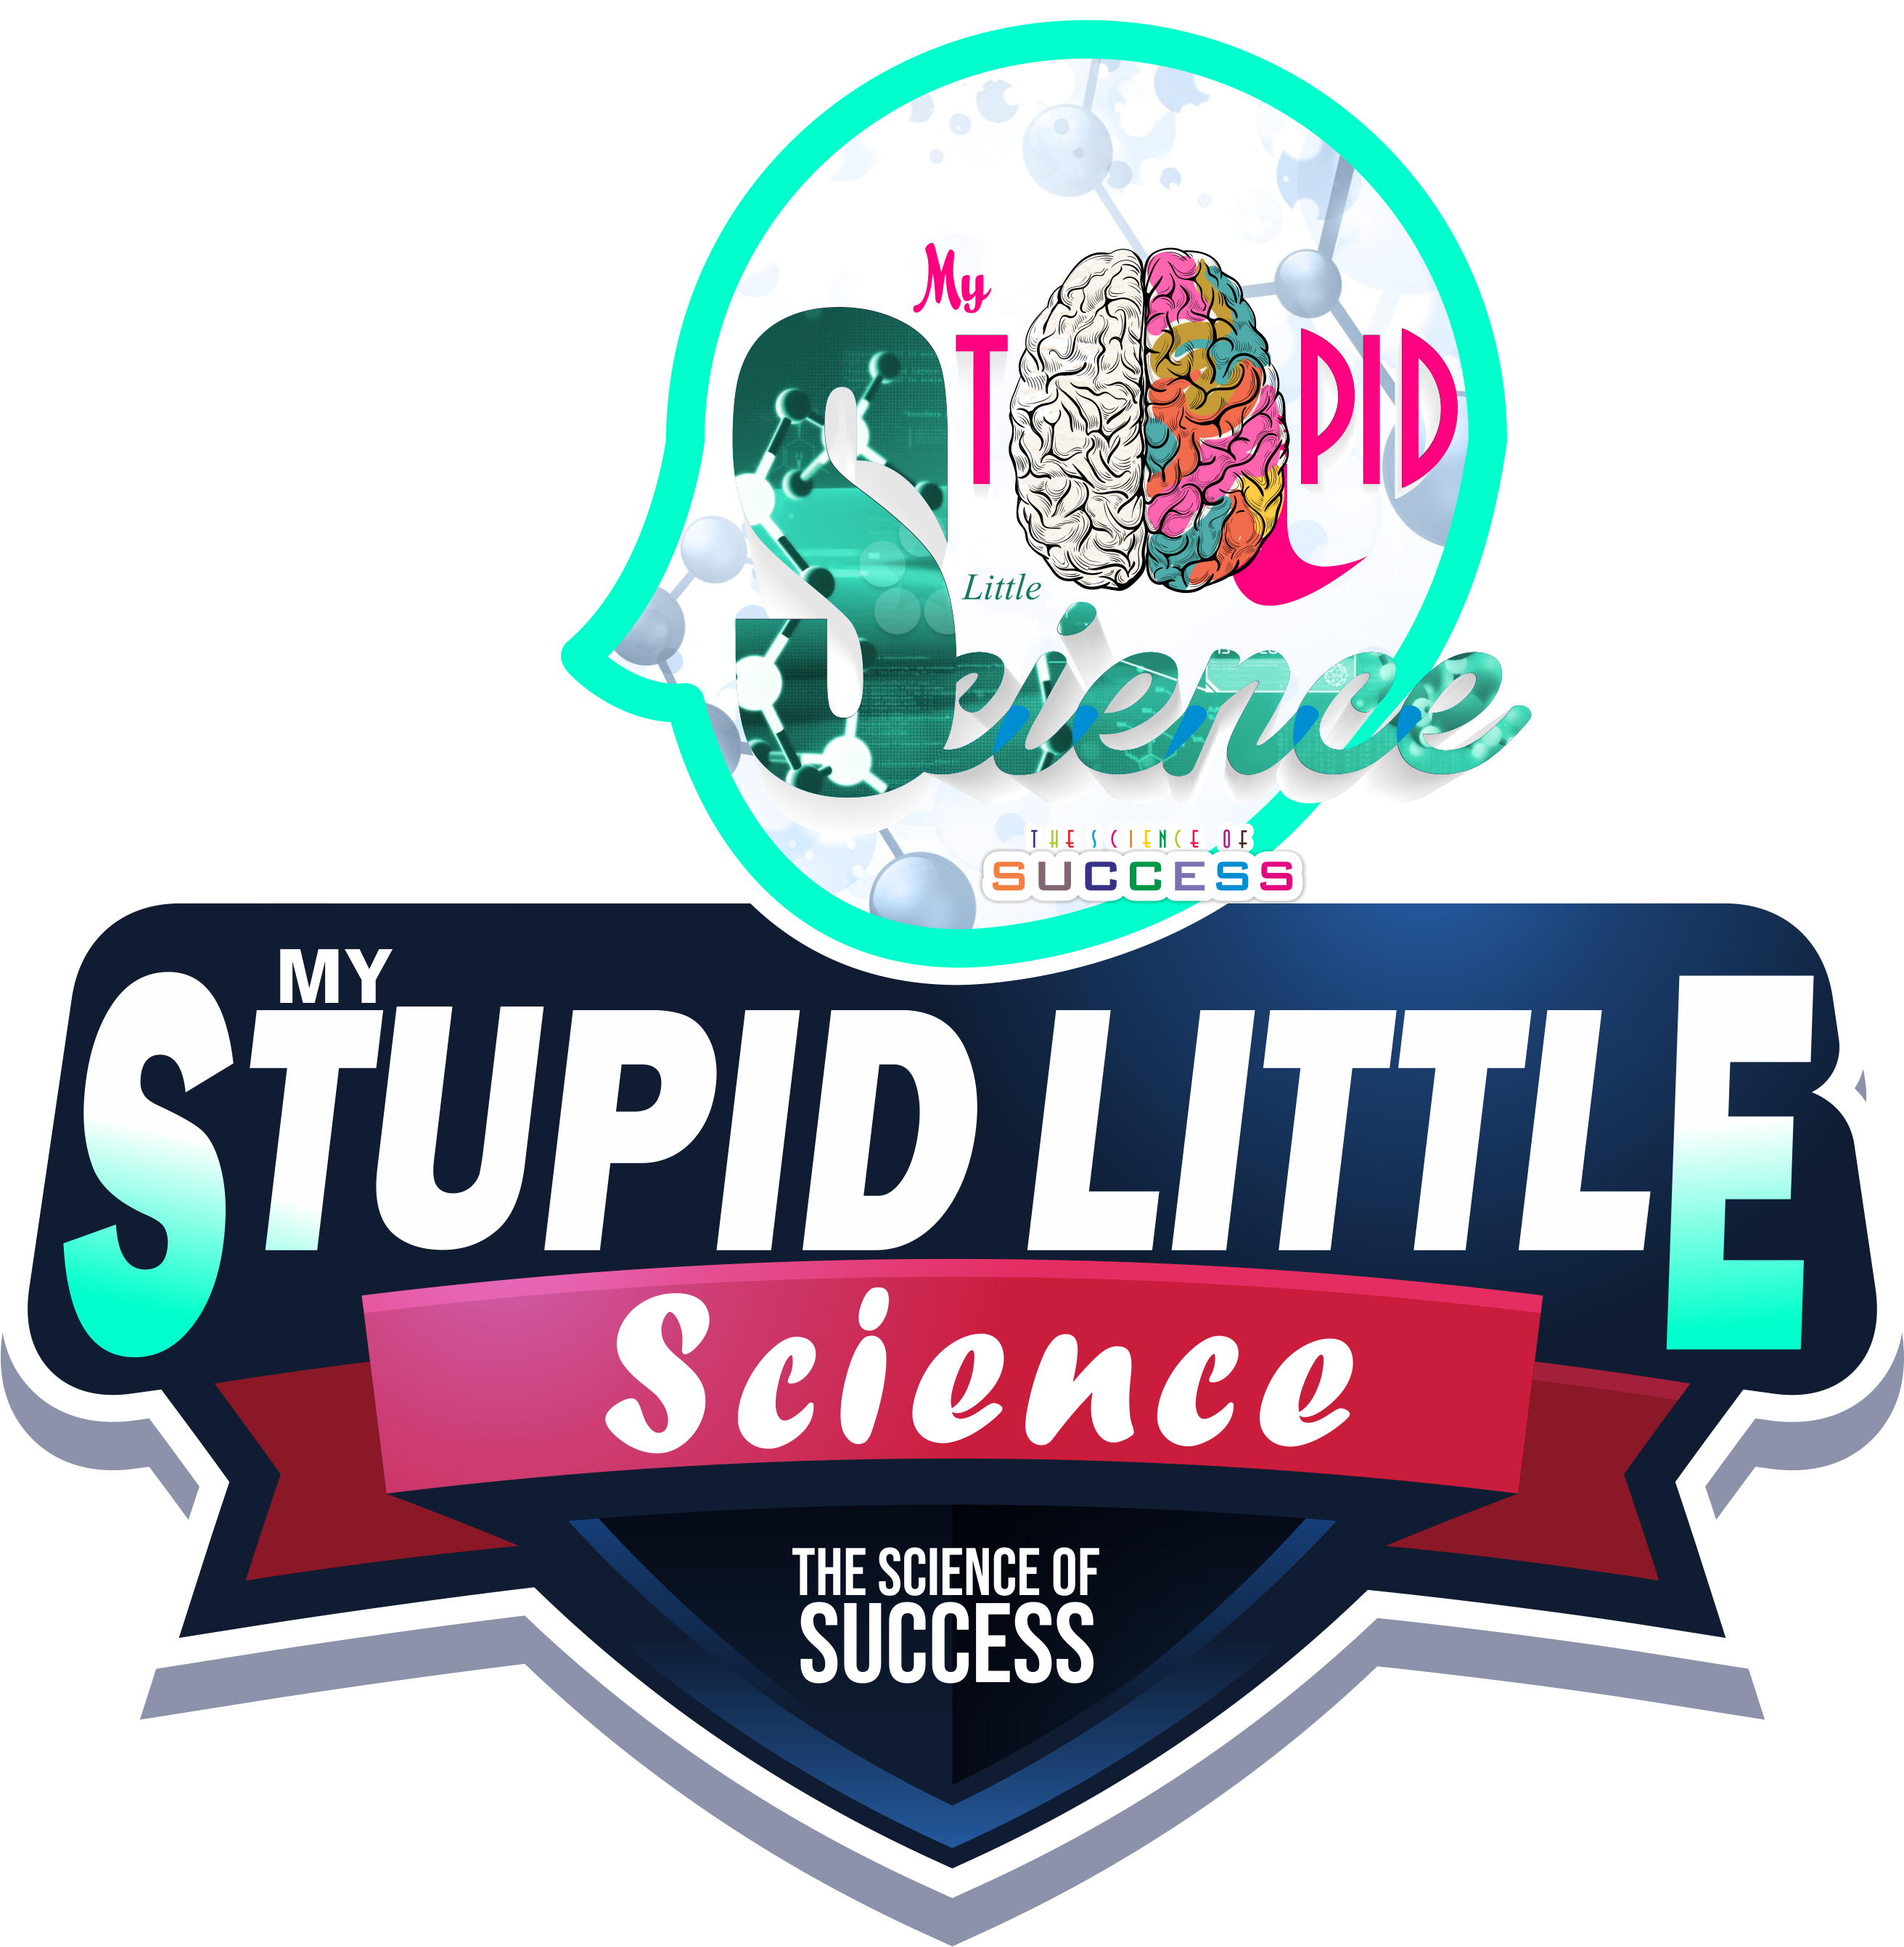 My Stupid Little Science